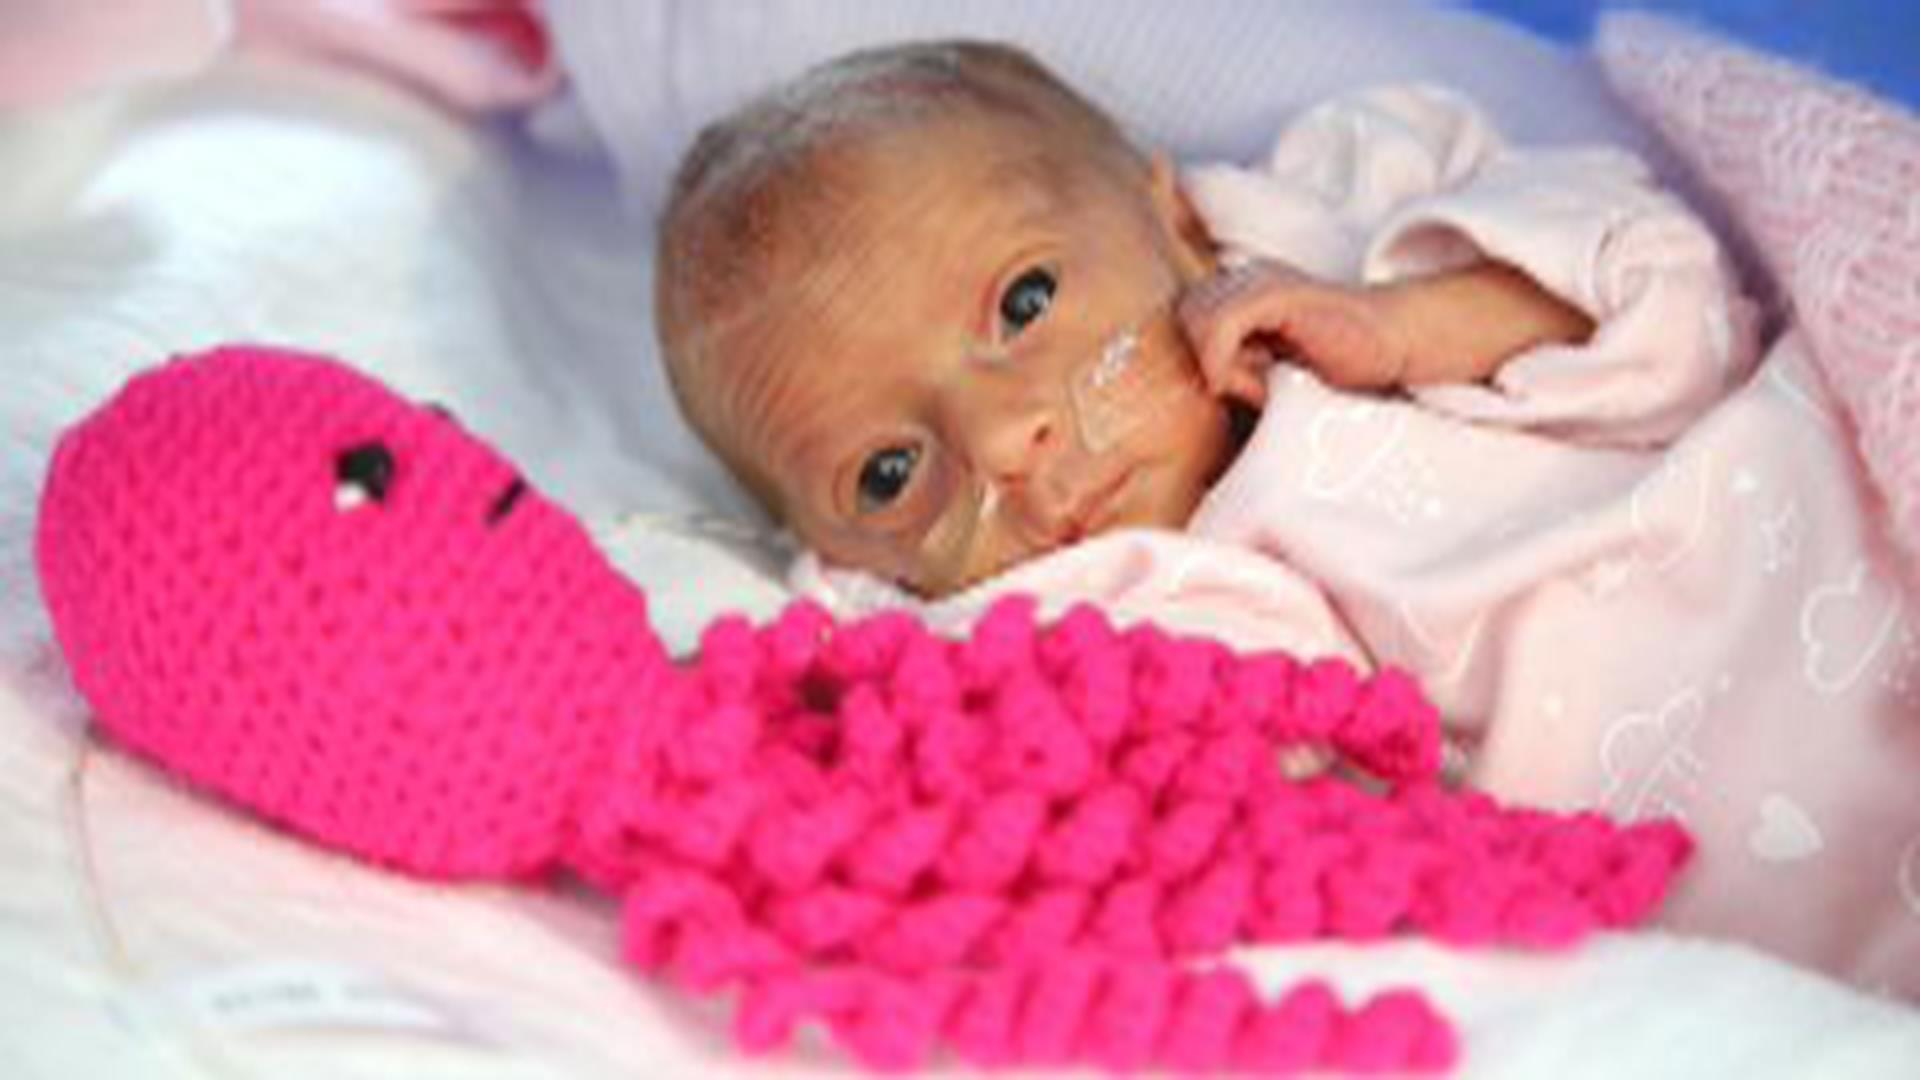 a0ef9bdcc The most premature surviving baby was born at 21 weeks